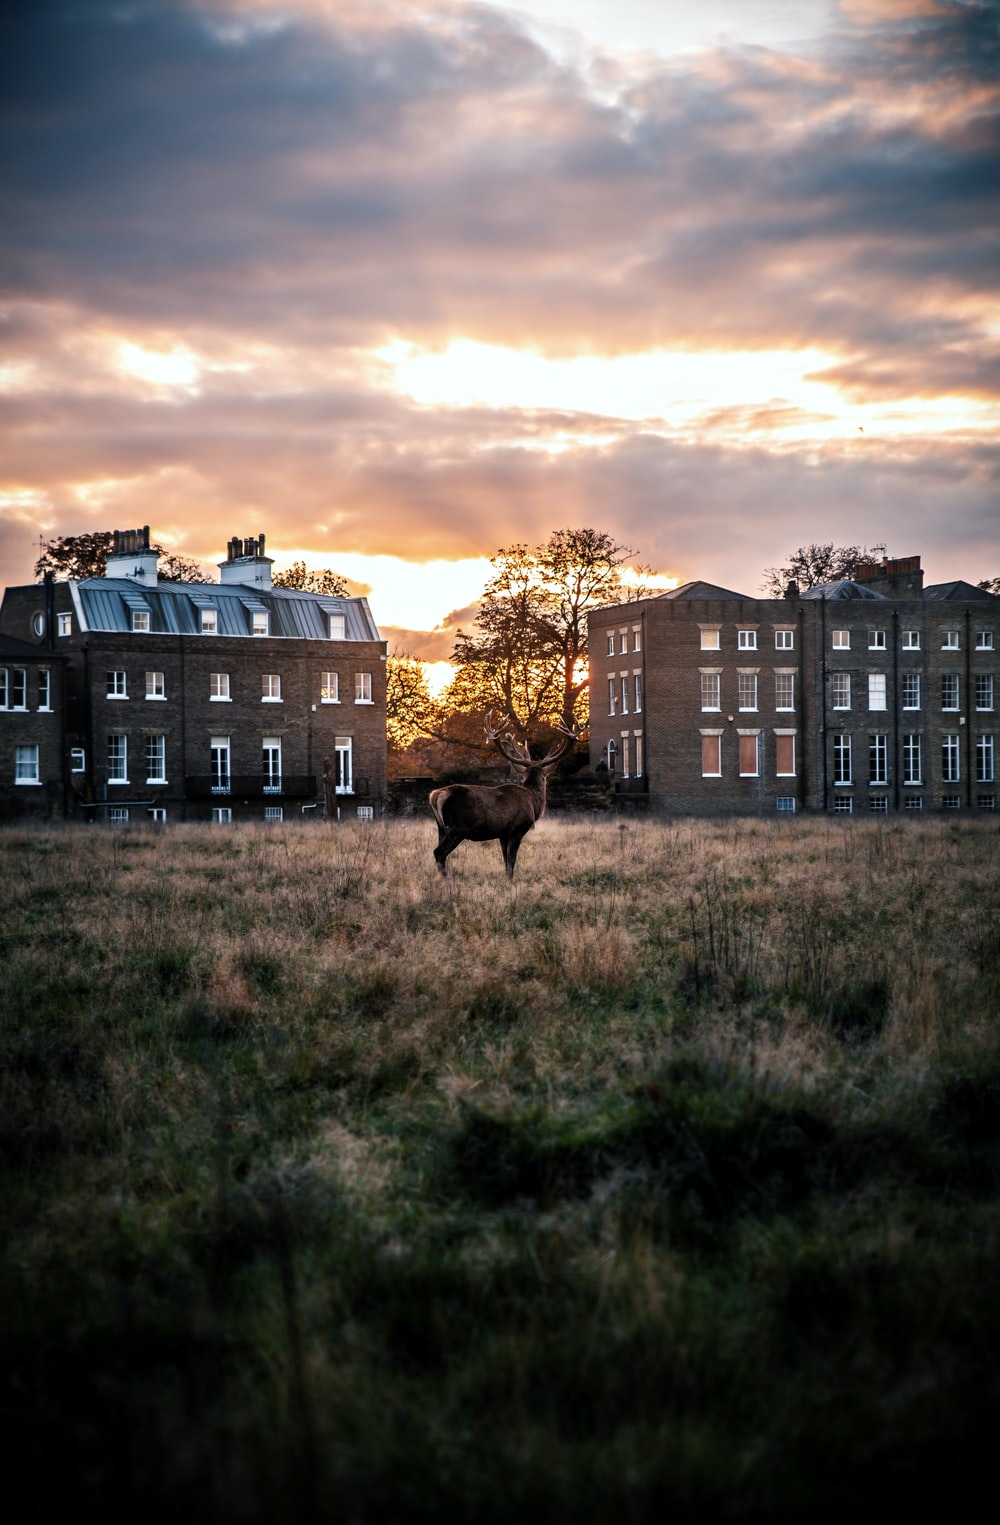 deer on grass field near buildings during day